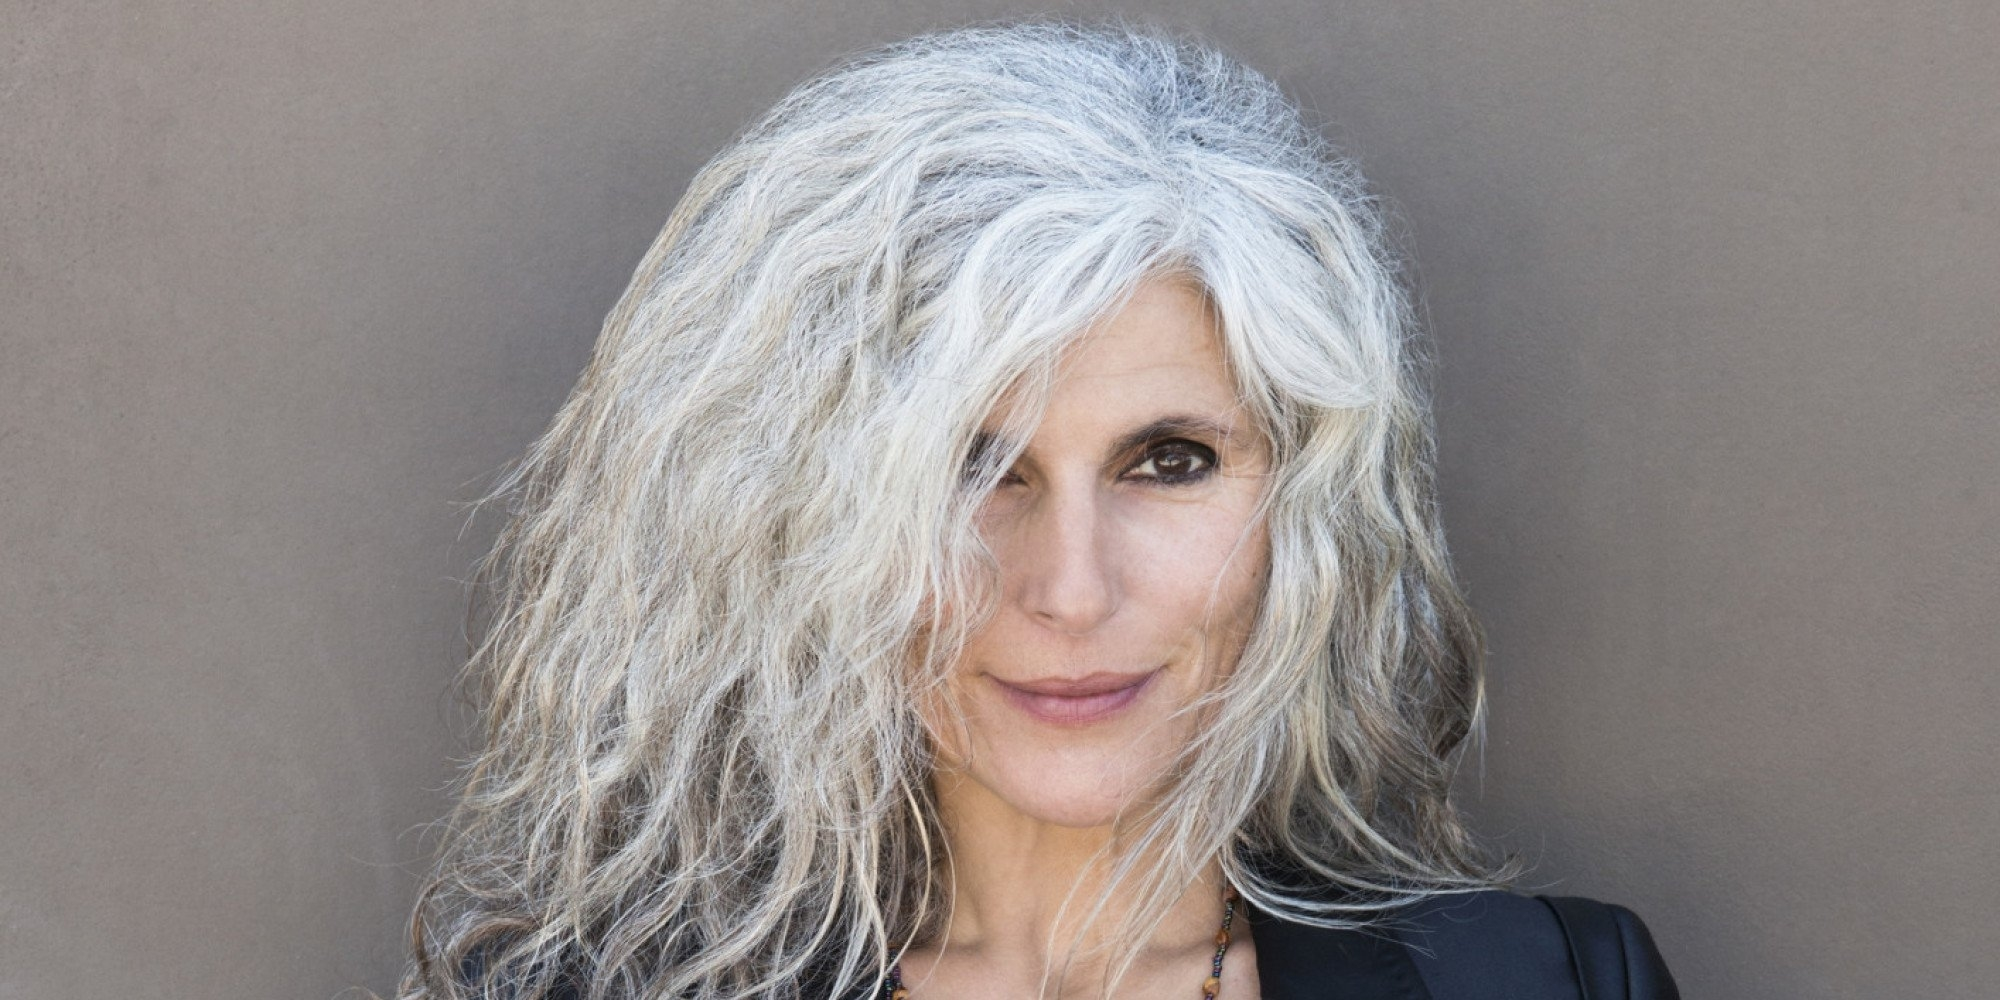 30 Stylish Gray Hair Styles For Short And Long Hair within Hairstyles For Gray Hair